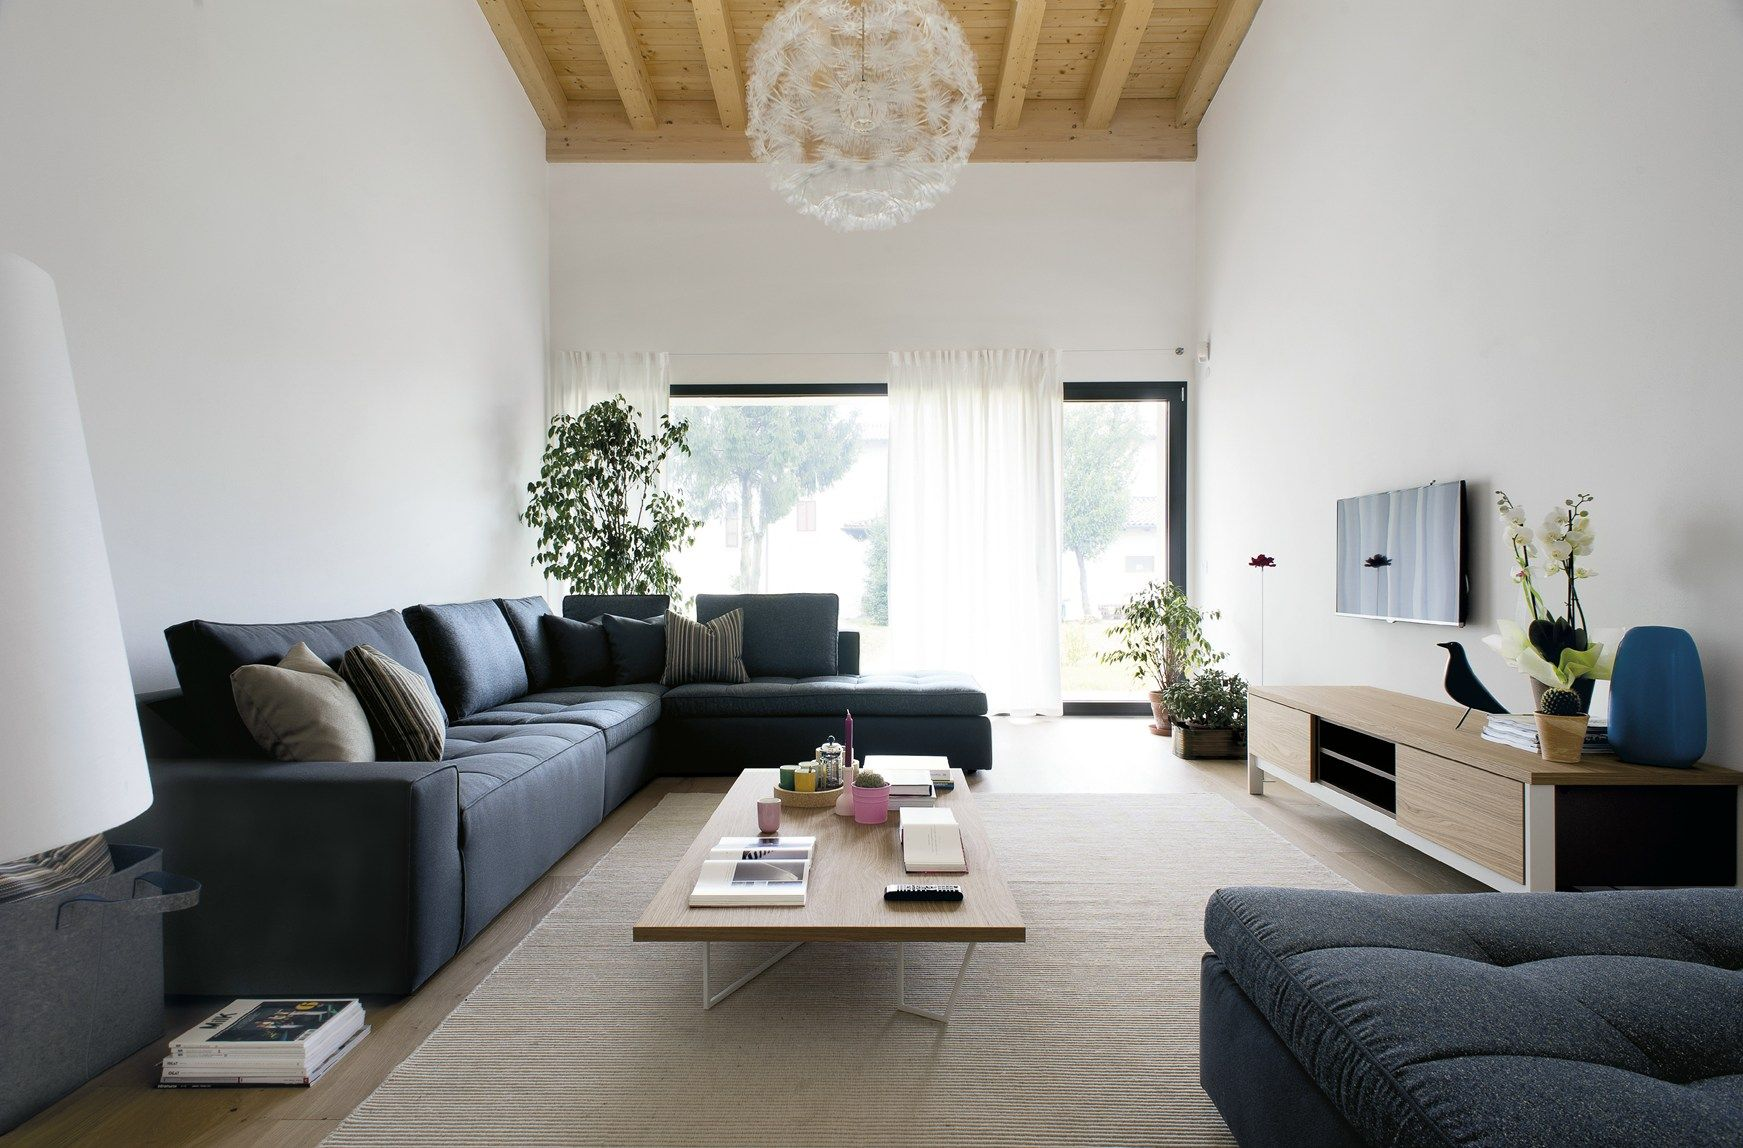 furniture they fit with simplicity into the home